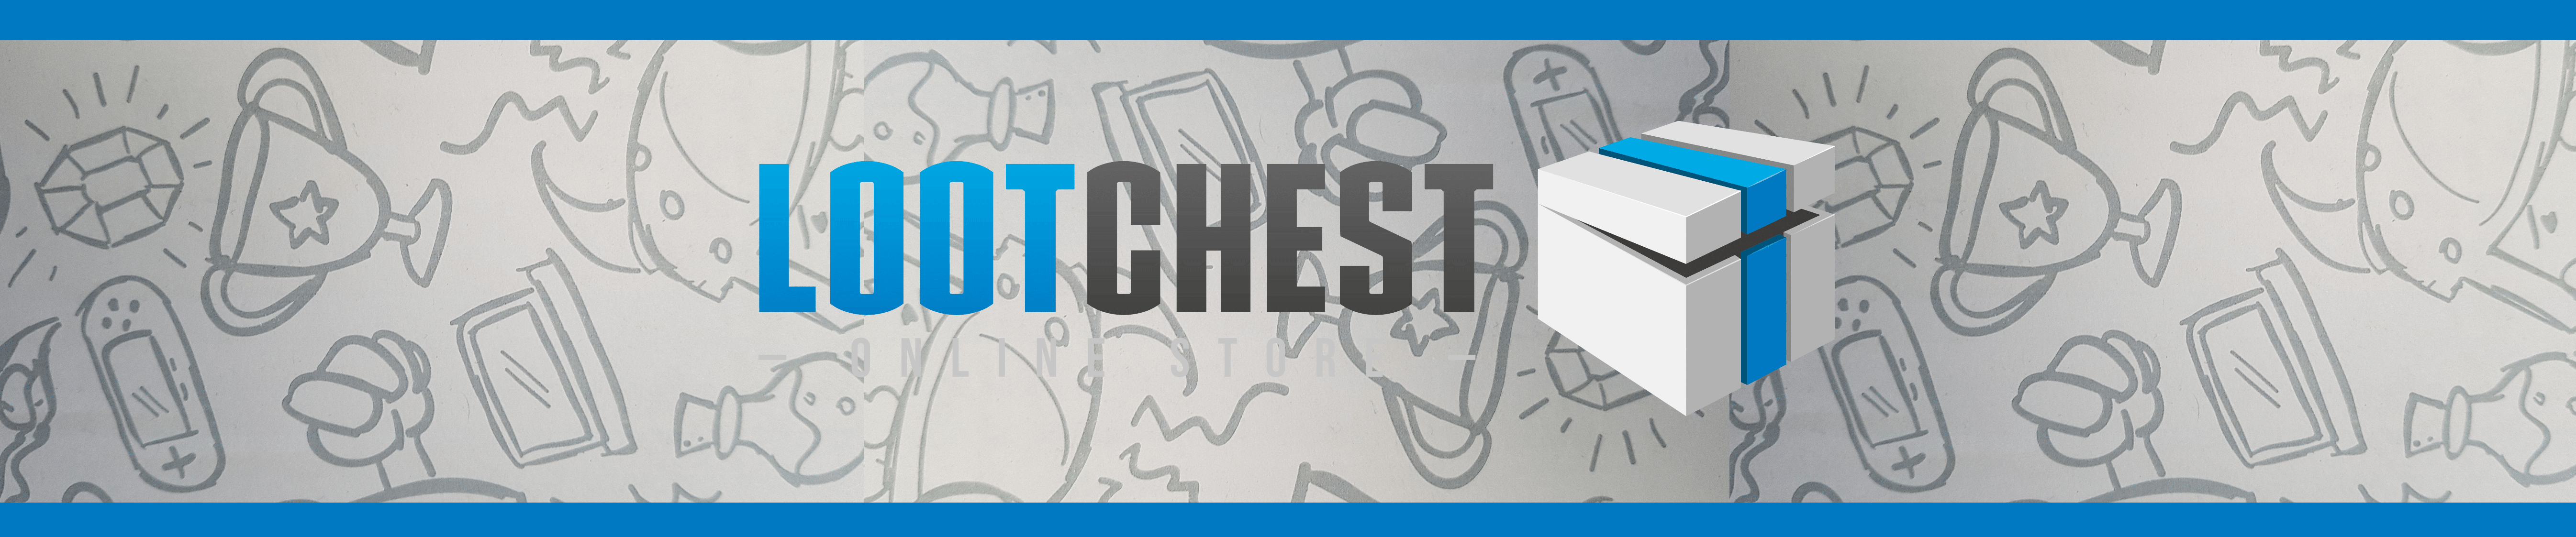 Lootchest - Battle for Loot